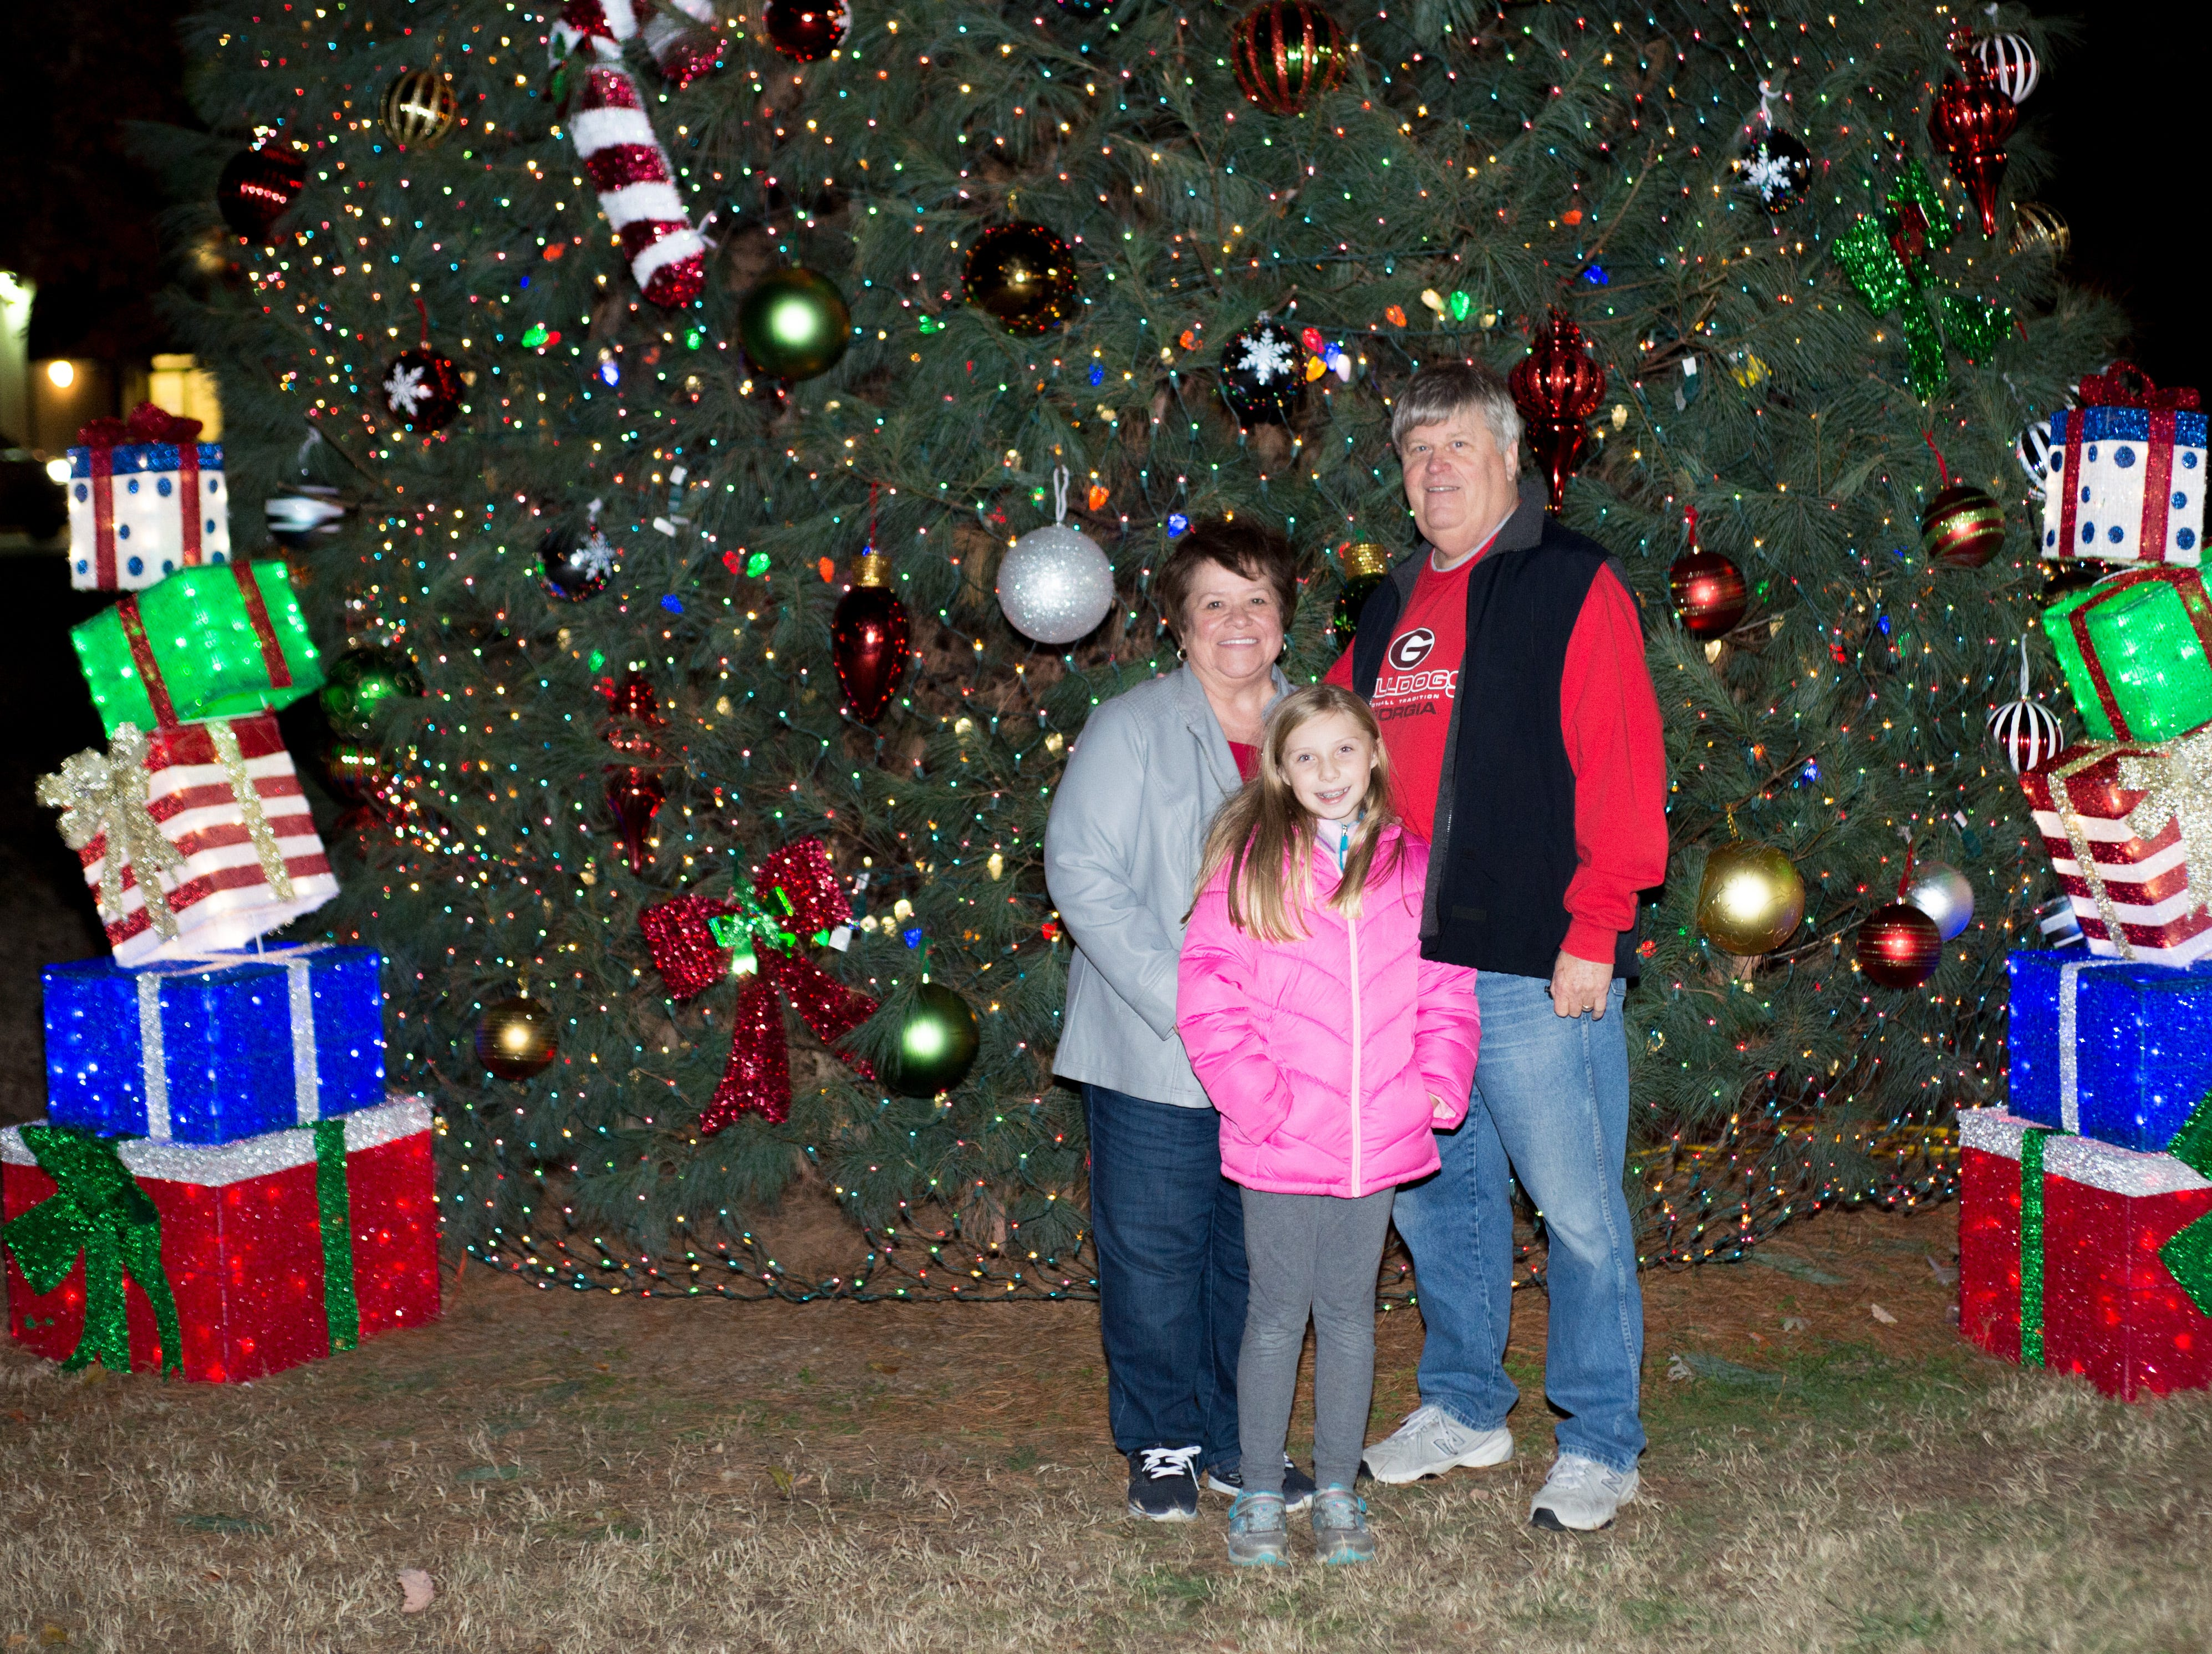 Attendees enjoy the Hendersonville HolidayFest Annual Tree Lighting Ceremony at Memorial Park on Sunday, Nov. 25.